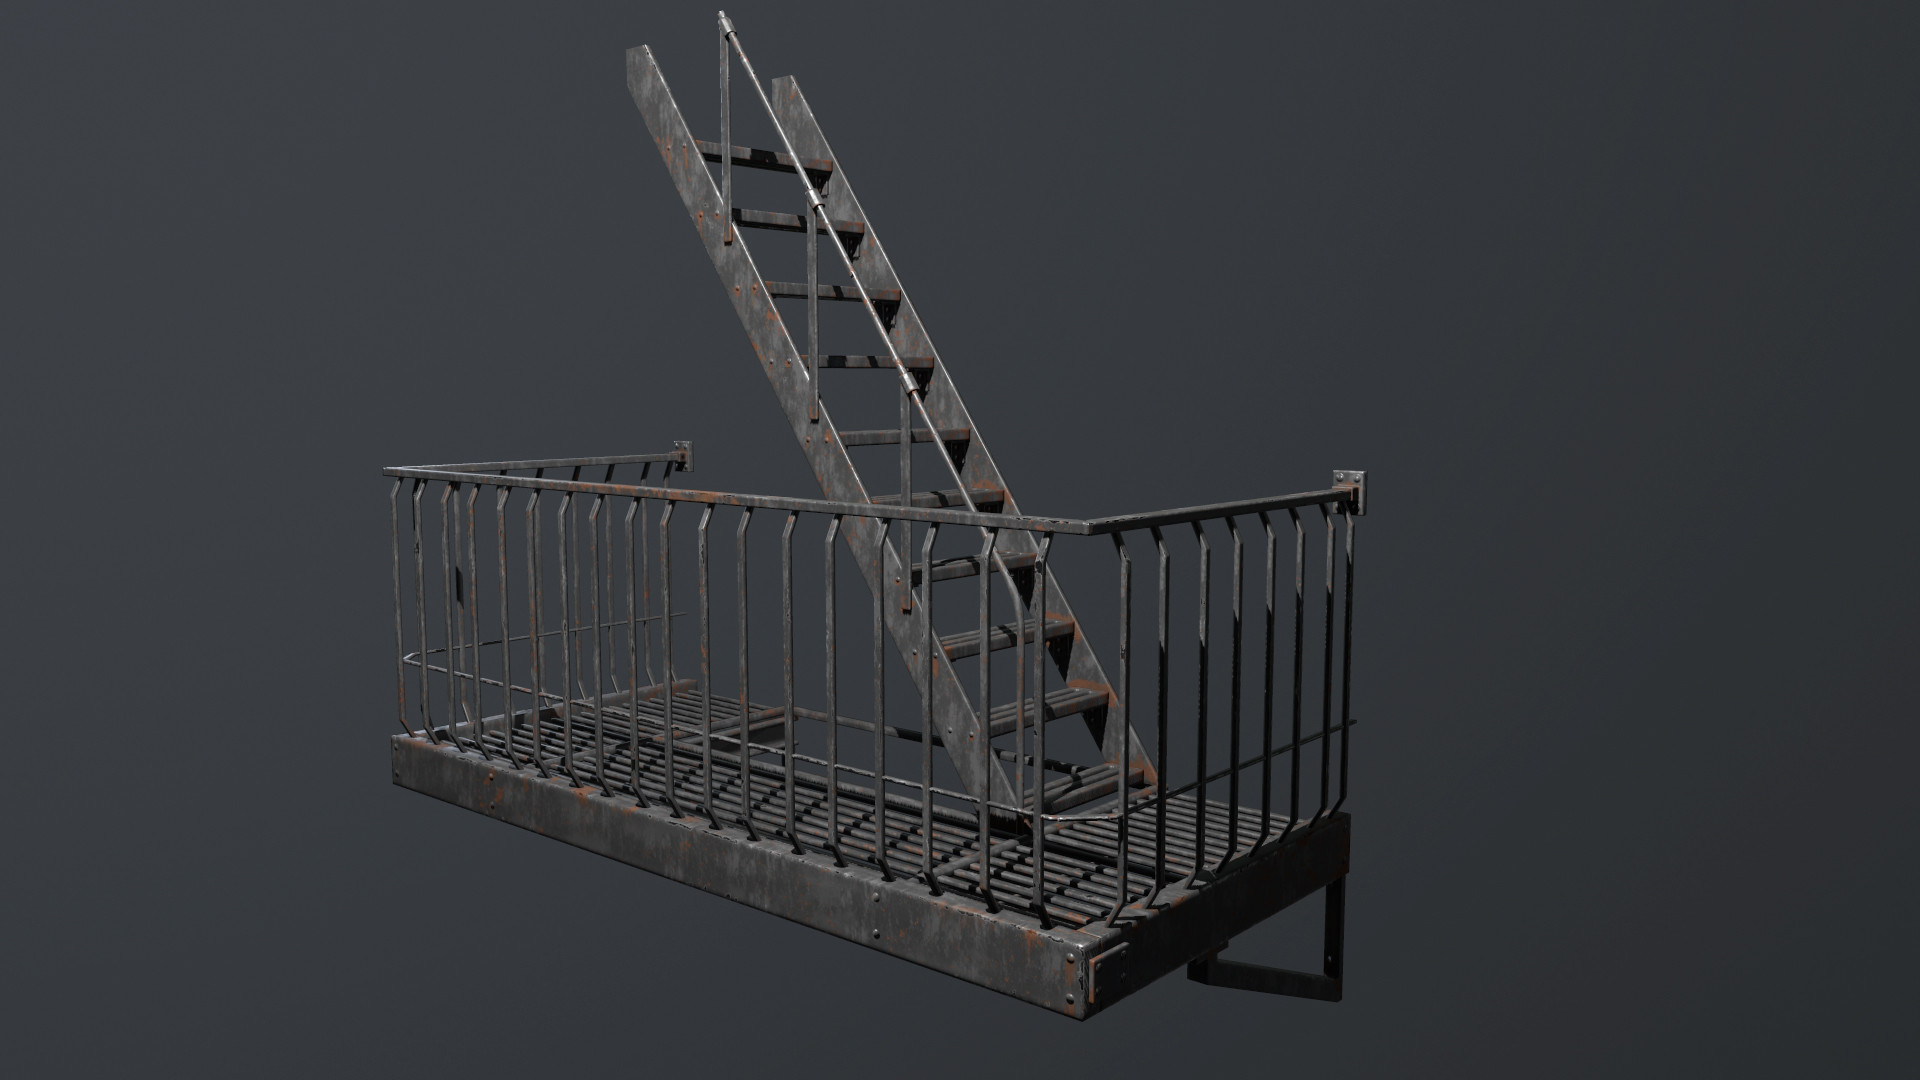 Kurt kupser assets 0006 fire escape 1